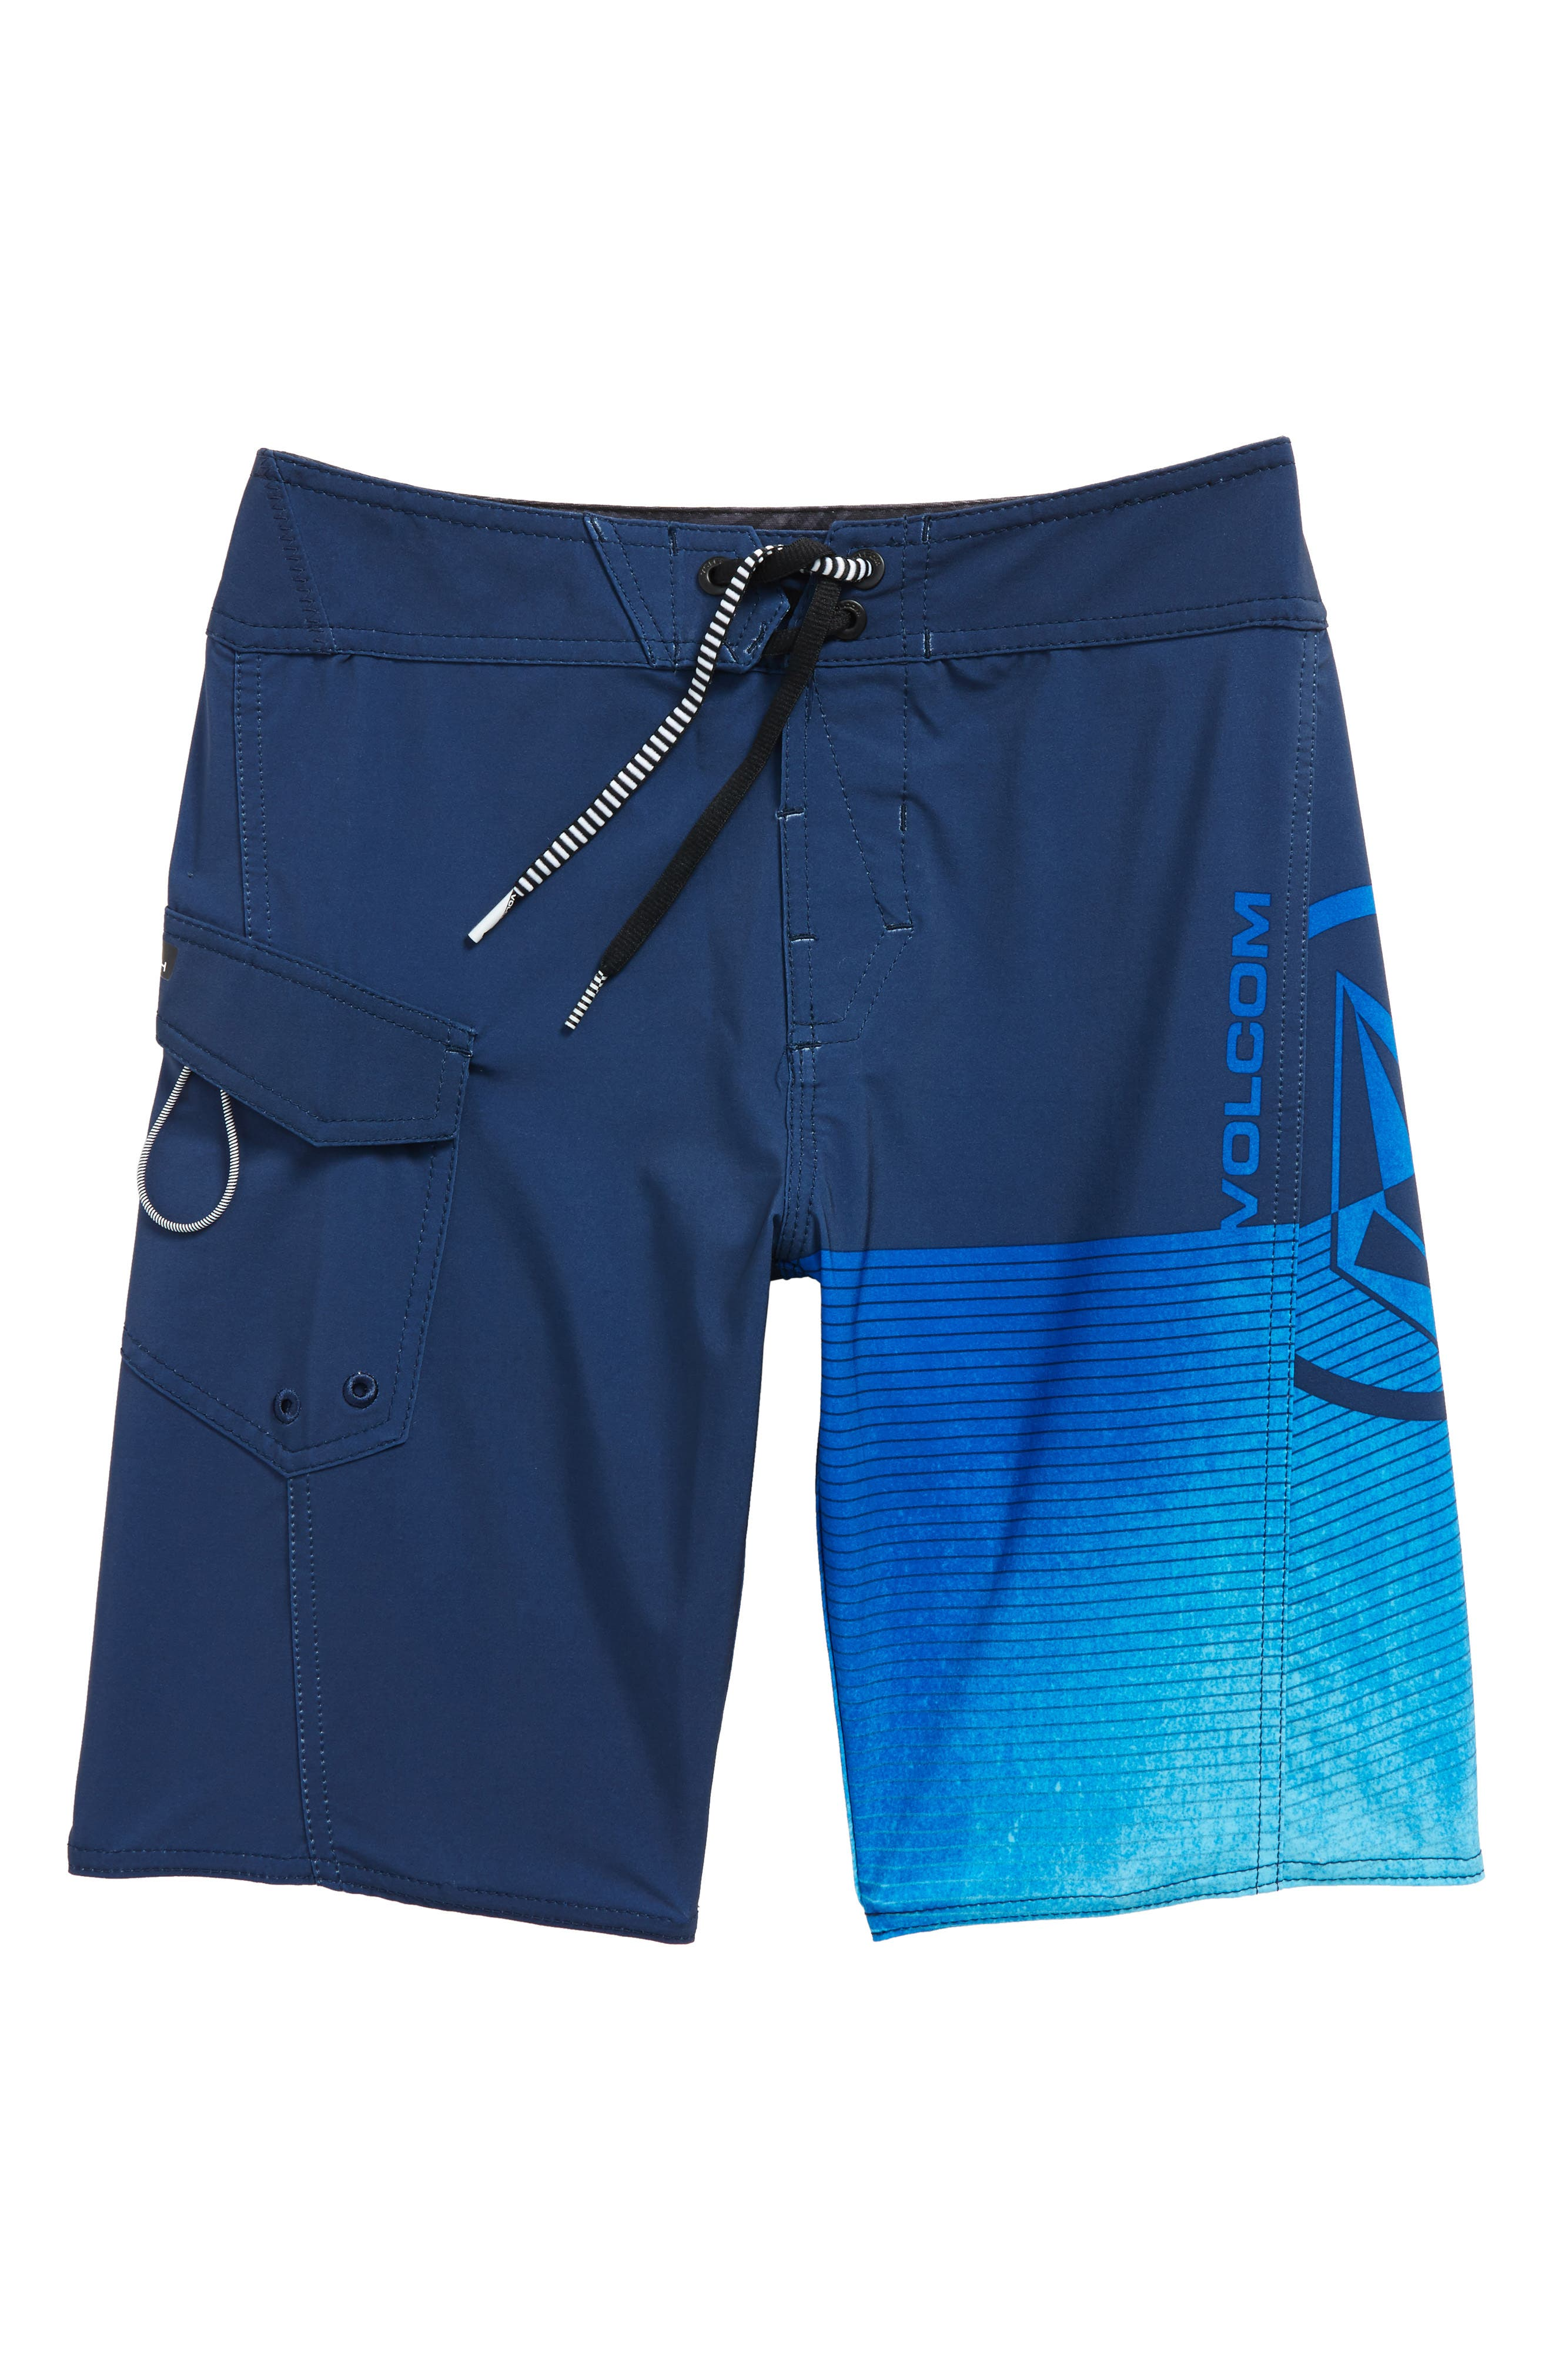 Costa Logo Mod Board Shorts,                         Main,                         color, 405